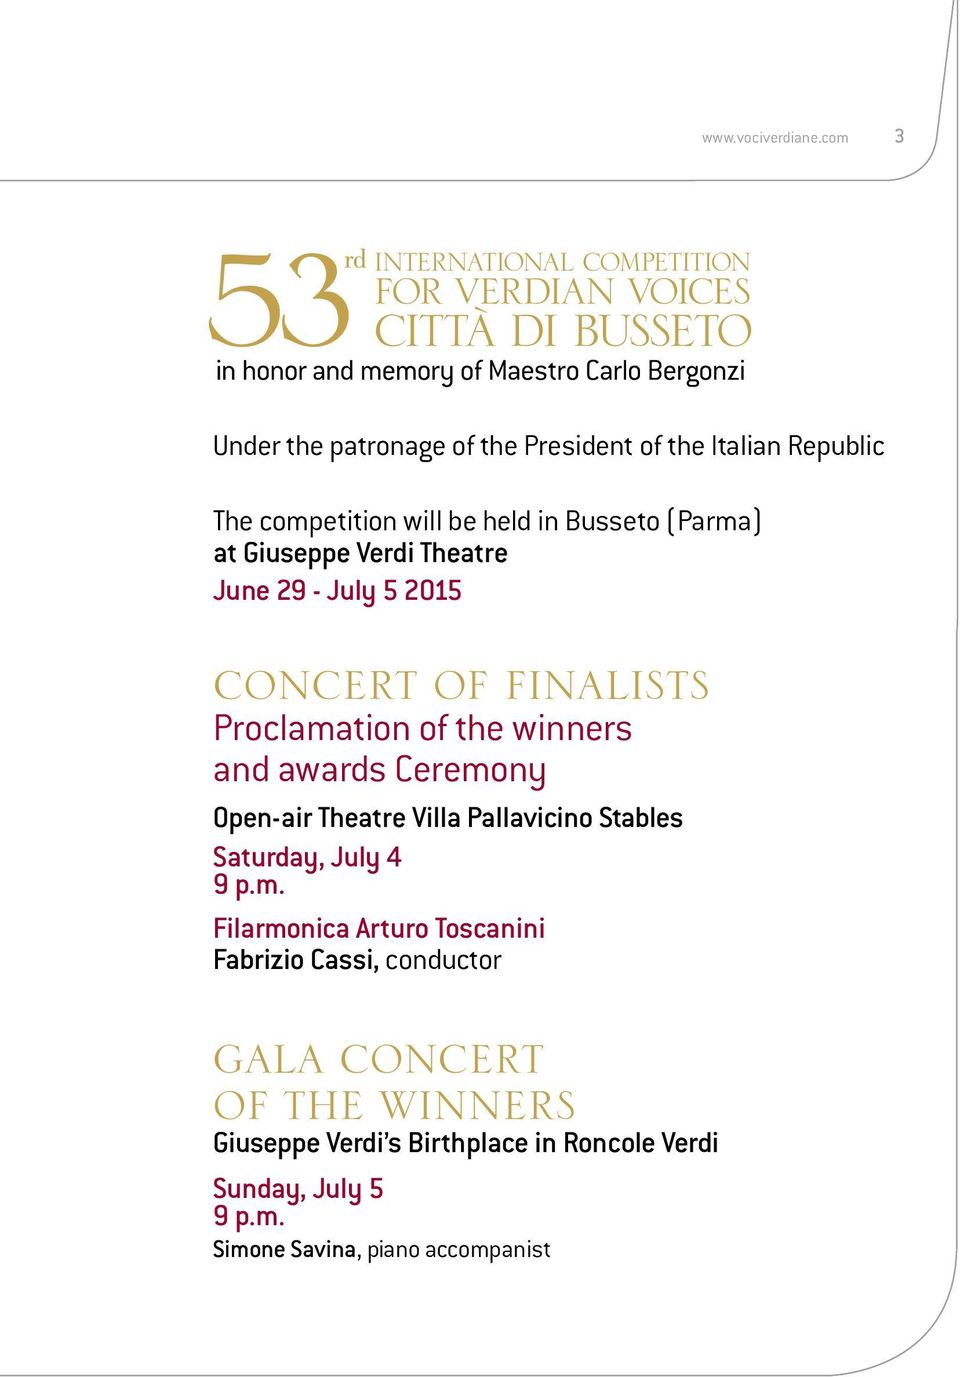 competition will be held in Busseto (Parma) at Giuseppe Verdi Theatre June 29 - July 5 2015 CONCERT OF FINALISTS Proclamation of the